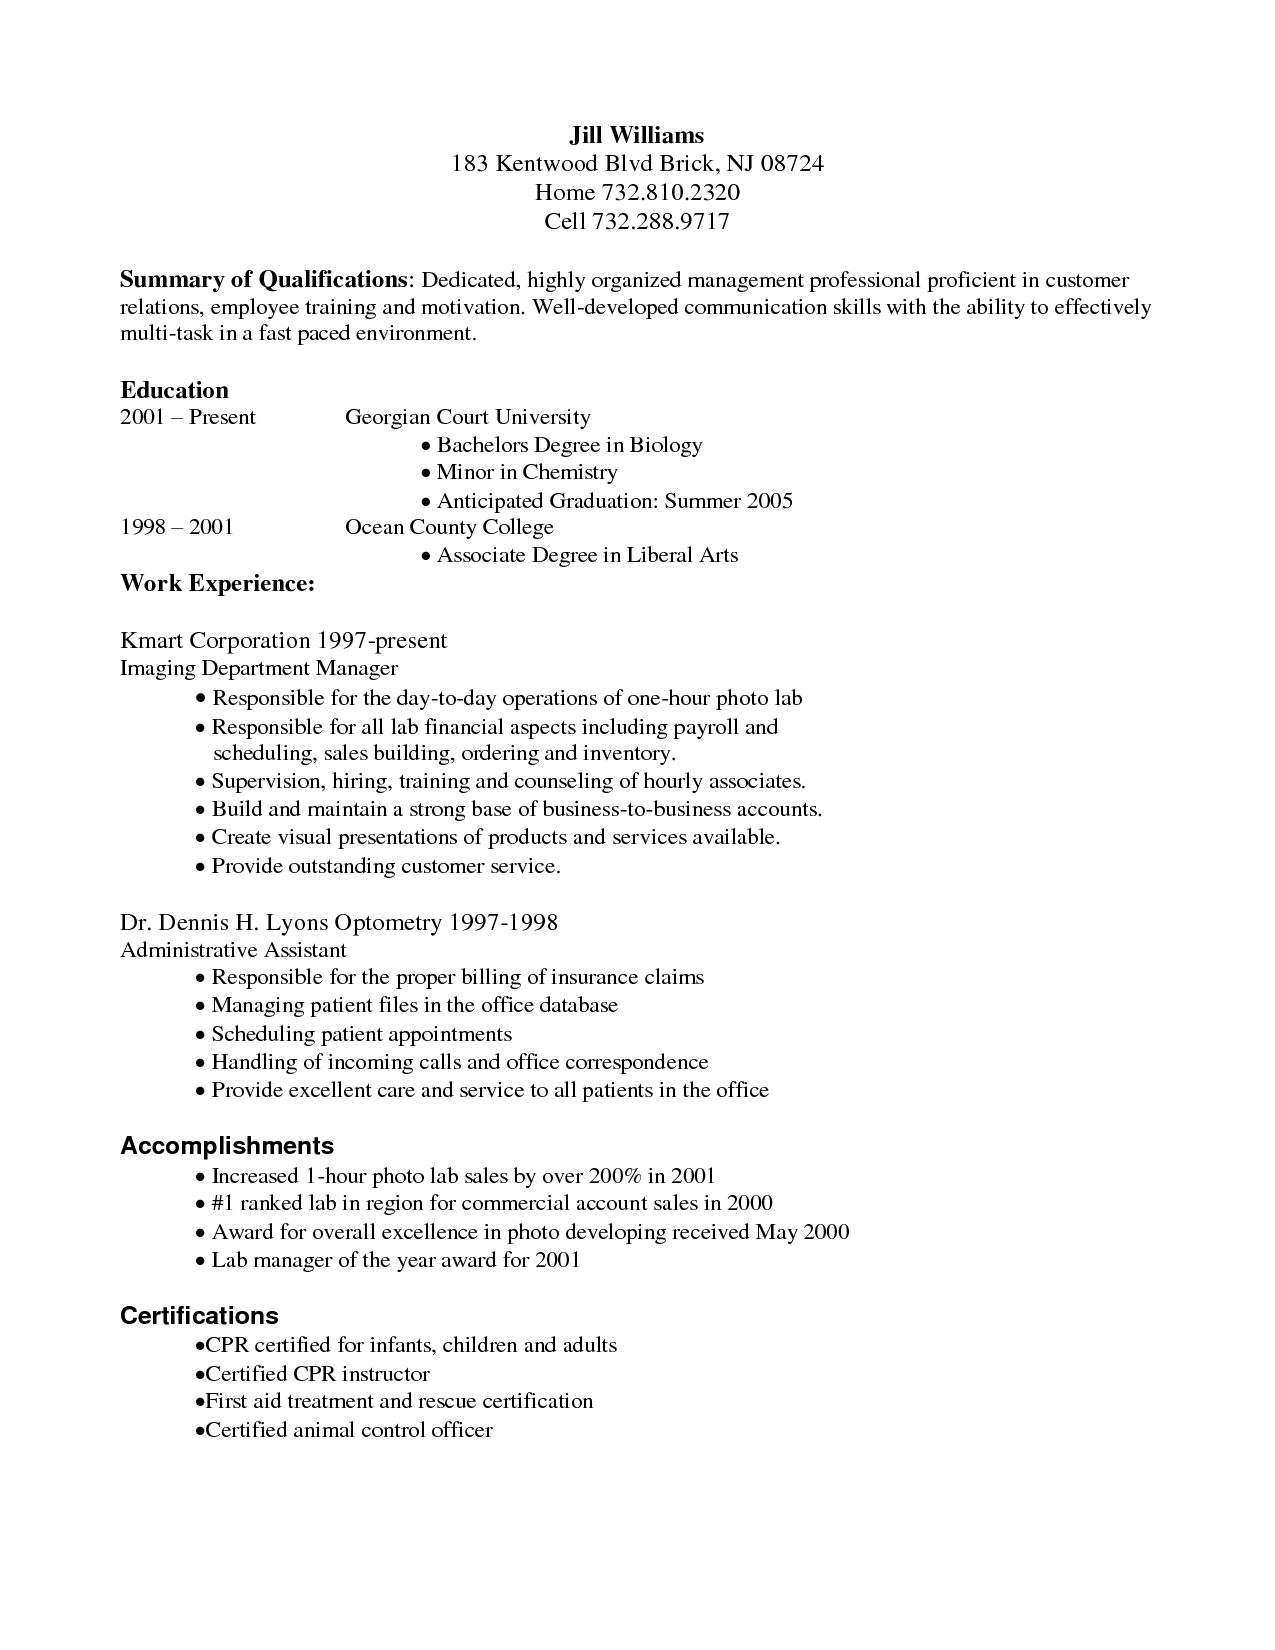 resume summary examples for medical biller